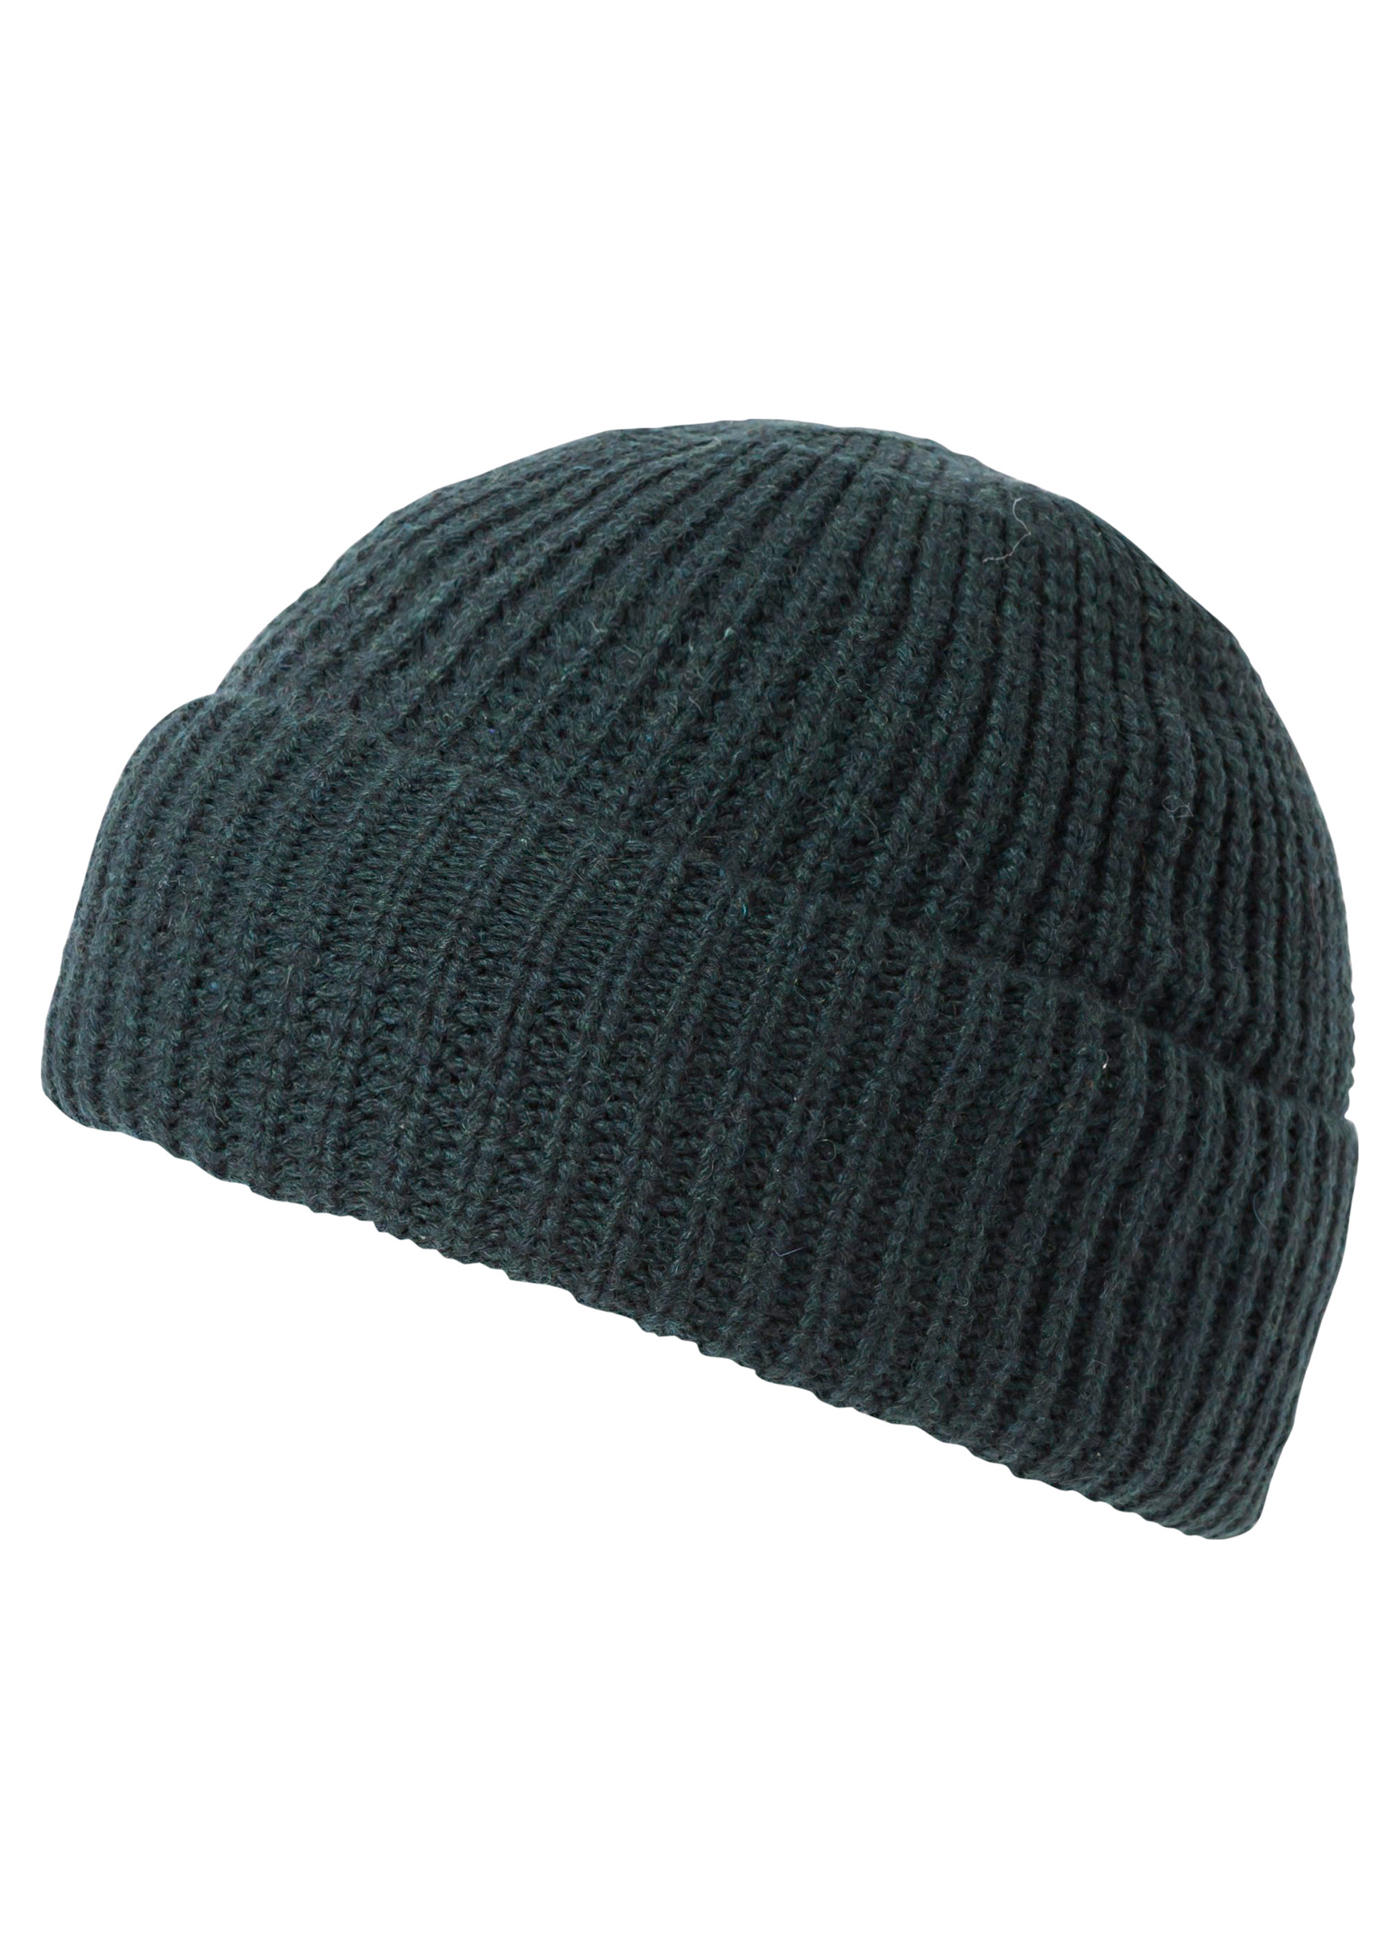 ZZ SOLID CASHMERER BEANIE image number 0